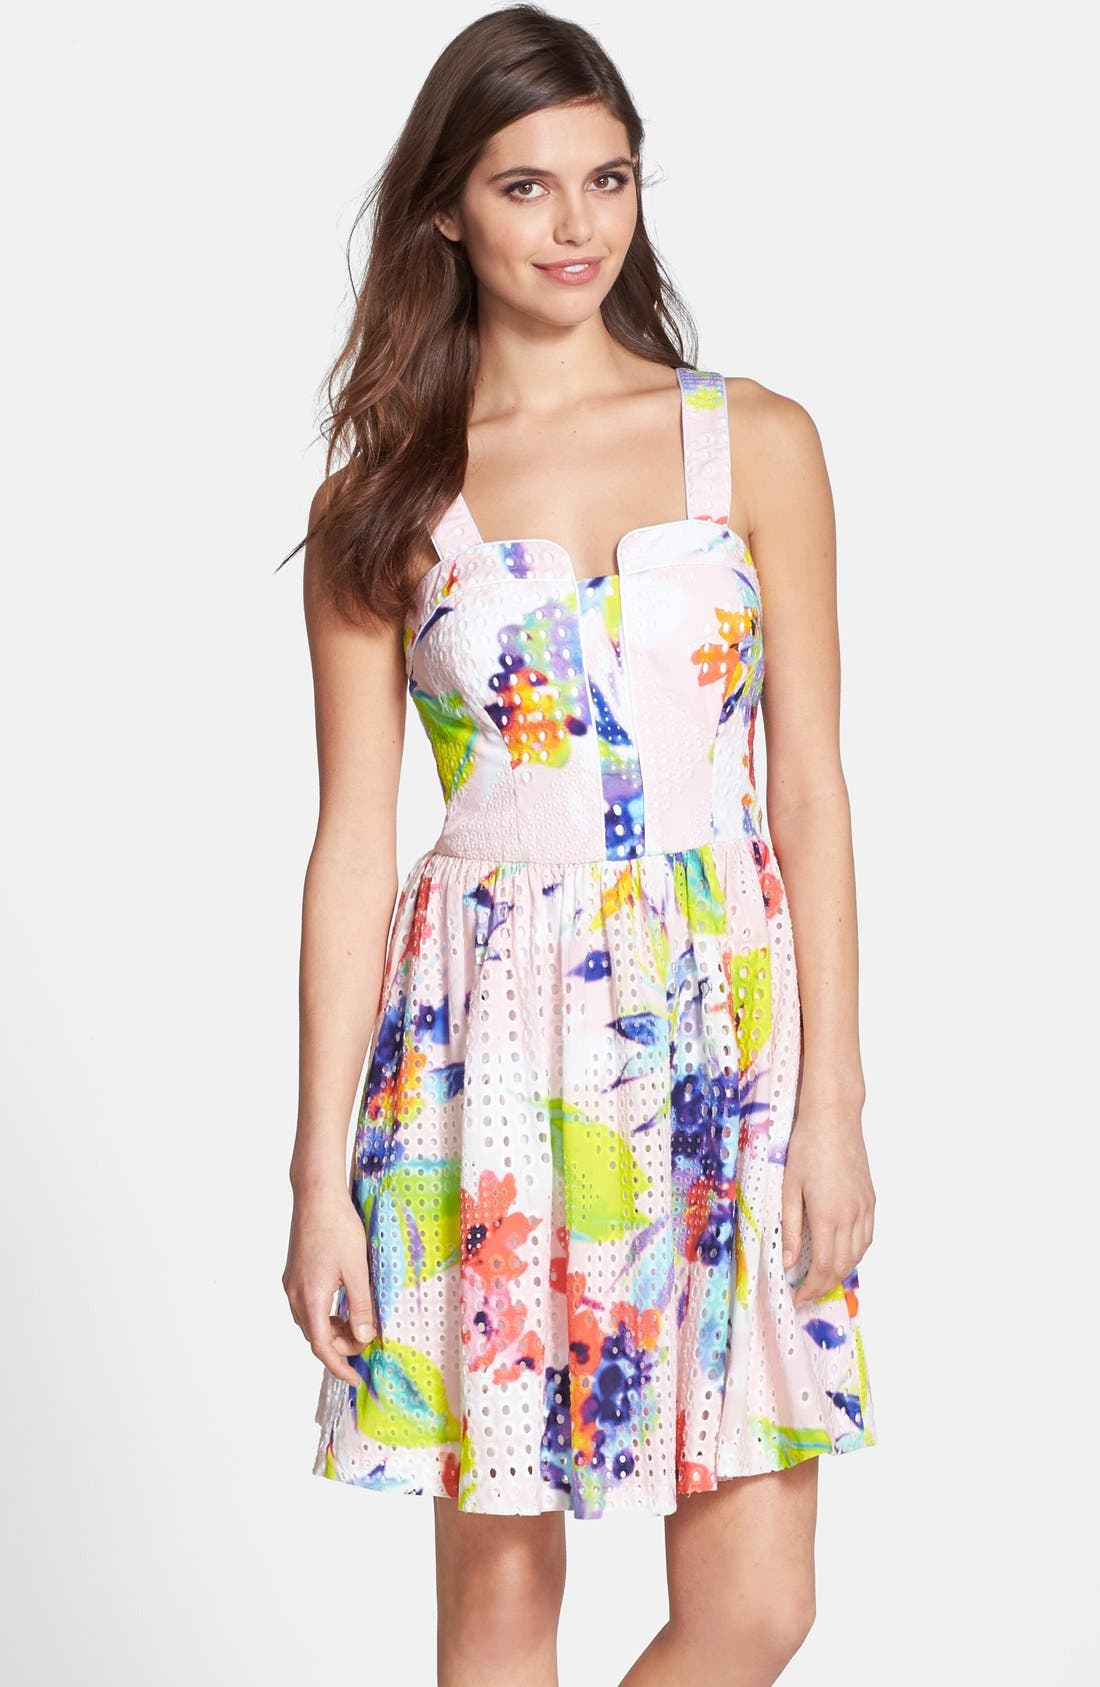 Alternate Image 1 Selected - Trina Turk 'Elin' Print Cotton Eyelet Fit & Flare Dress